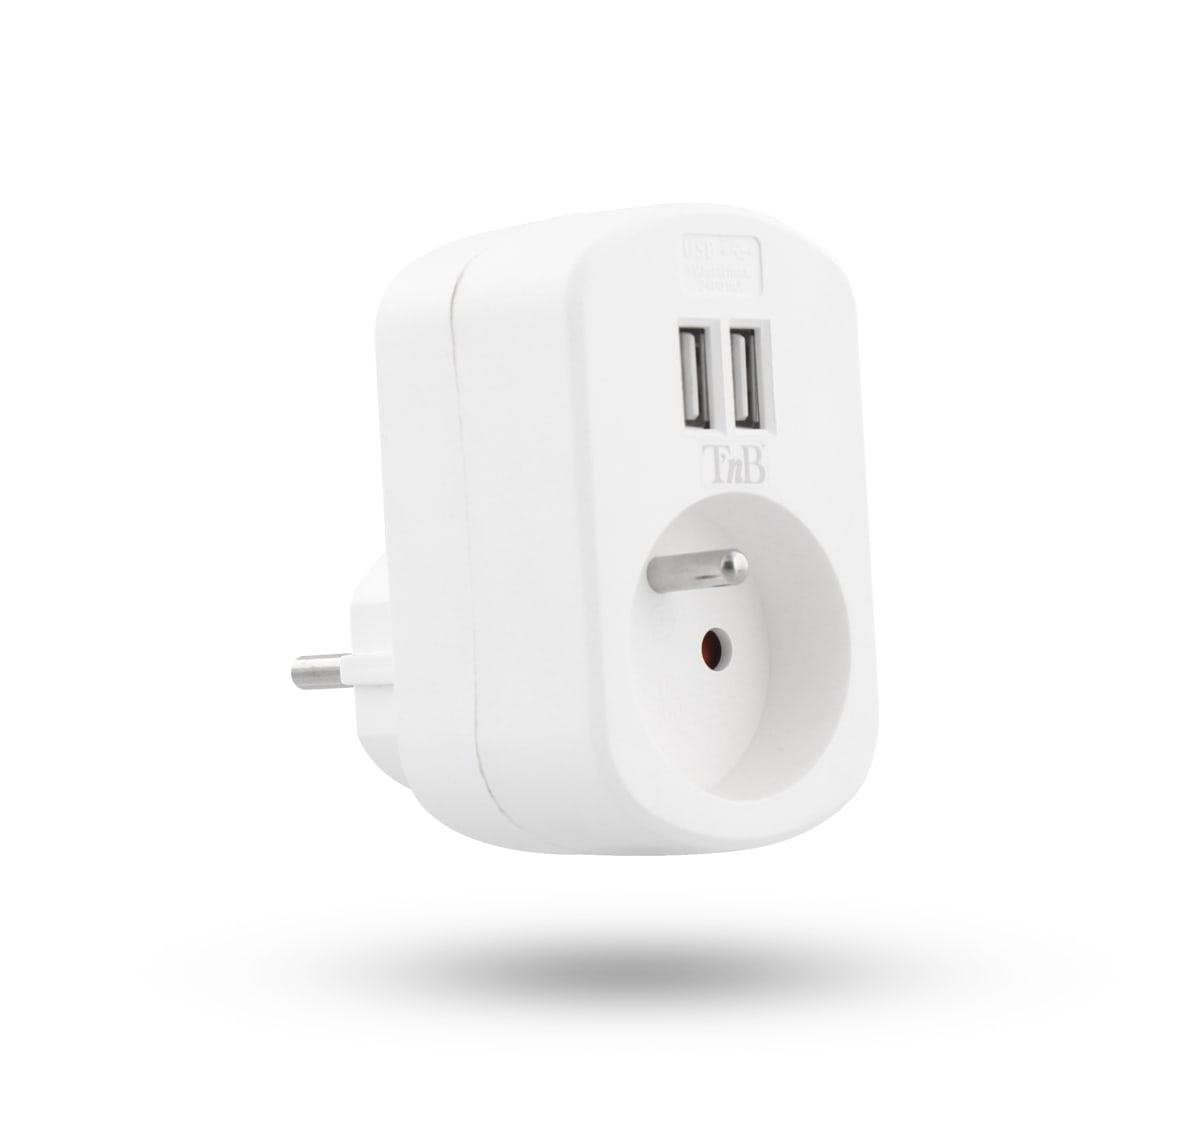 2 IN 1 USB AC CHARGER 2.4A